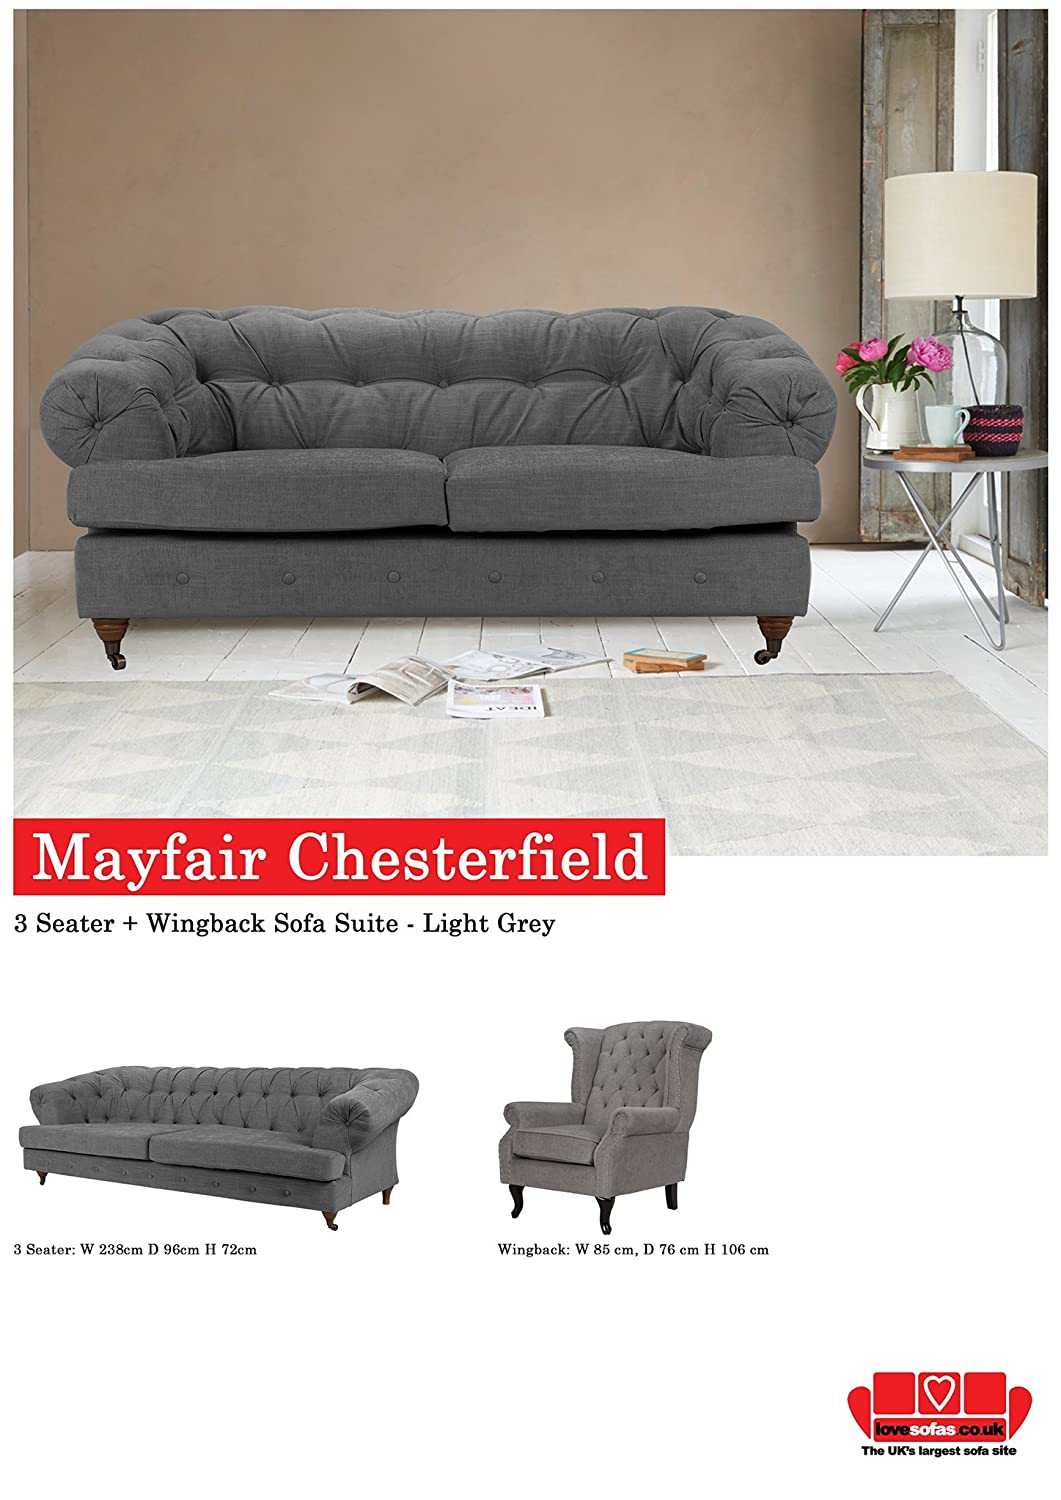 Lovesofas Nuevo Mayfair Chesterfield 3 + WINGBACK sillón ...